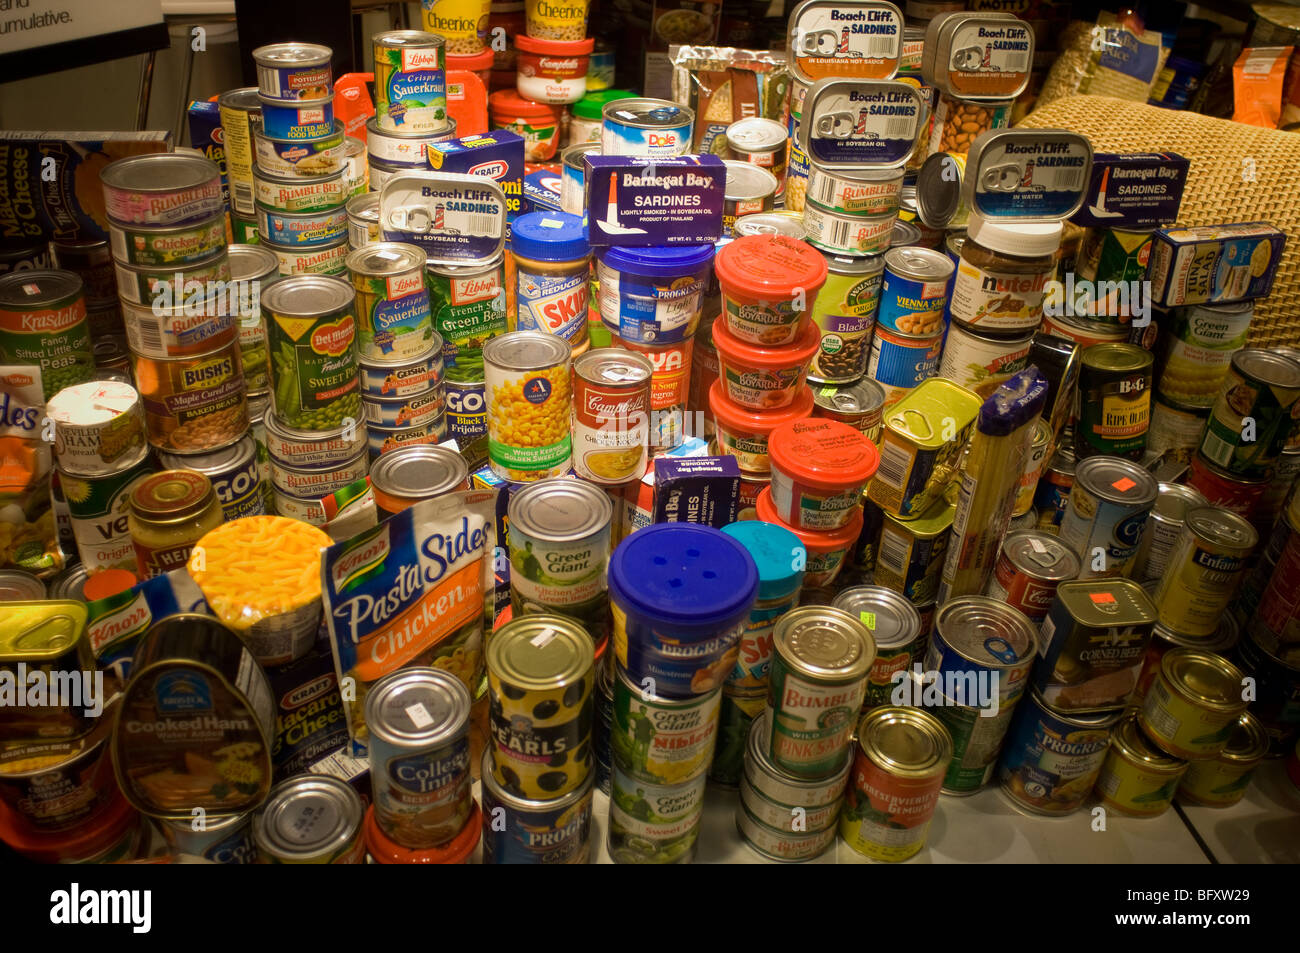 Non-perishable food collected for City Harvest by the store CB2 in the Soho neighborhood of New York - Stock Image